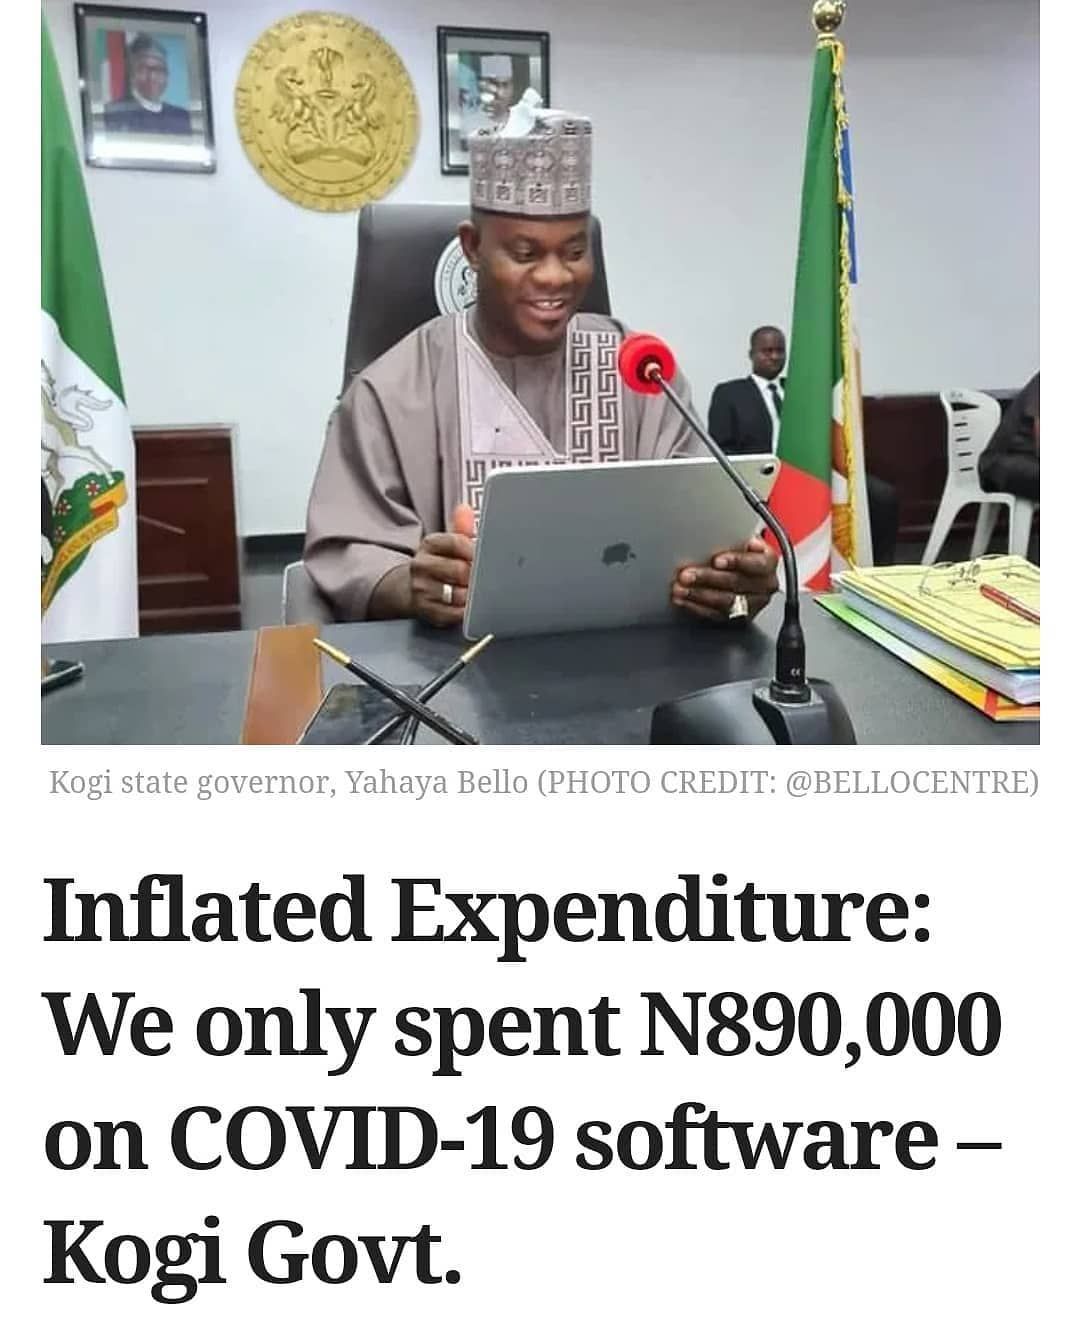 """The Kogi State Government said it acquired a controversial 'self-assessment COVID-19 software' at a total cost of only N890, 000.  However, the state government said it spent N90.7 million """"to acquire computer software for COVID-19 response"""".  The state's Commissioner for Information, Kingsley Fanwo, stated this in a statement he issued in reaction to a report by Premium Times exposing a bloated expenditure by the state government on a COVID-19 software.  While Mr Fanwo claimed the N890,000 it spent covered the self-assessment app and the upgrade of the health ministry's website, he failed to explain how it spent the remaining N89.8 million.  PREMIUM TIMES had reported how the state last yearspent over N90 million on softwarethat the developers now offer for only N300,000.  The financial records seen byPREMIUM TIMESand which contained the expenditure were certified by the Accountant-General of the state, Momoh Jibrin, and the Commissioner for Finance, Asiru Idris.  In the breakdown, the government initially budgeted N150 million for the computer software project but stated that it ended up spending N90.7 million, """"thus saving N59.2 million"""".  The software, approved by COVID-sceptic Governor Yahaya Bello, was for tracking coronavirus cases in the state. However, the software is no longer functioning as the developers said they had a contract to host it for only one year.  The state government said the controversial software, which comes in a mobile application and website, was one of its measures to curb the spread of COVID-19 in Kogi.  The software uses the checklist of the Nigeria Centre for Disease Control (NCDC) for suspected and high-risk cases to evaluate users.  But checks by our reporter showed that the same software now costs only N300,000 from the same company that developed it for the state government.  An official of the state had admitted the government actually spent less than a million naira on the project and could not defend the N90.7 million announc"""